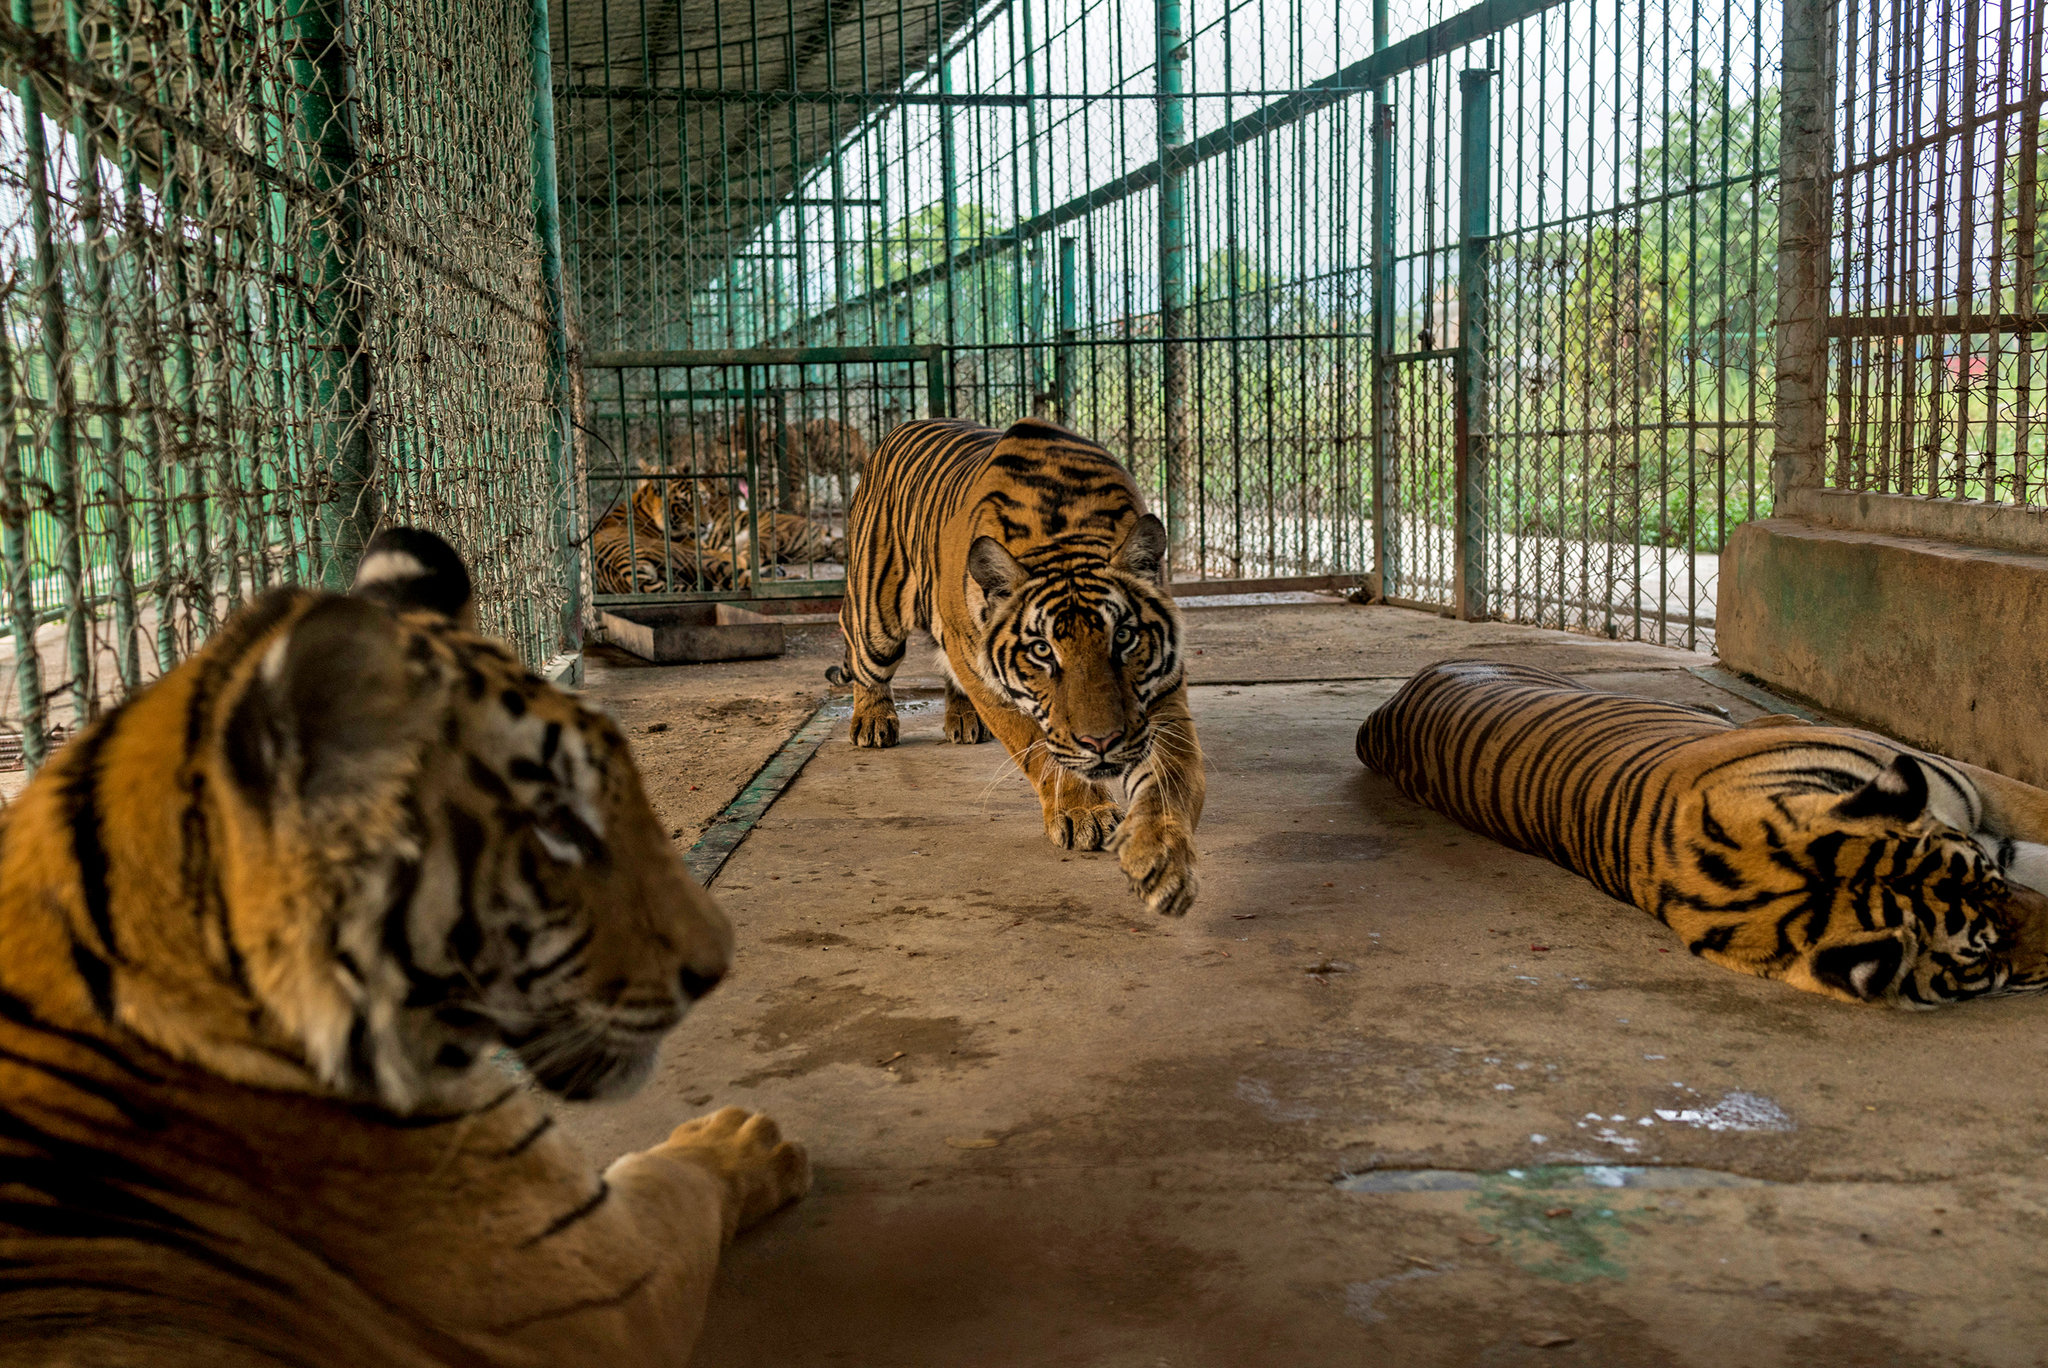 Asia's Illegal Wildlife Trade Makes Tigers a Farm-to-Table Meal ...